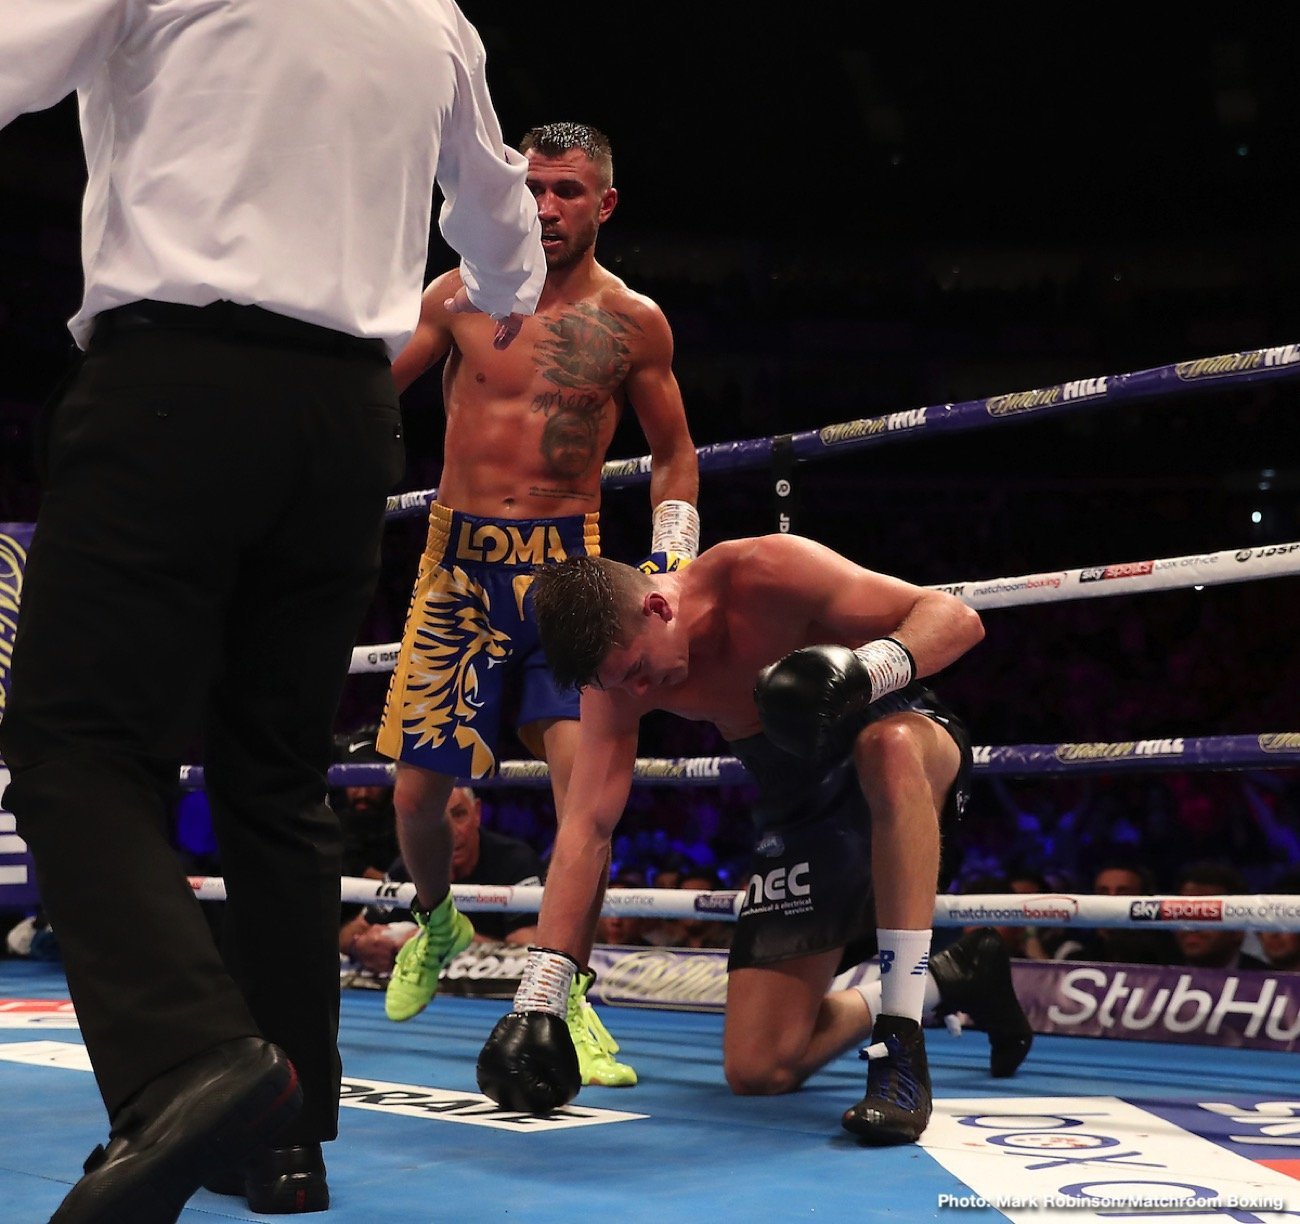 Vasily Lomachenko - Vasiliy Lomachenko was presented with quite the test from British challenger Luke Campbell. But after 12 rounds, it was the Pound-for-Pound Picasso who prevailed, scoring a unanimous decision (119-108 2X and 118-109) over Campbell to retain his WBA/WBO lightweight titles and pick up the vacant WBC title in front of a sold-out crowd at the O2 Arena